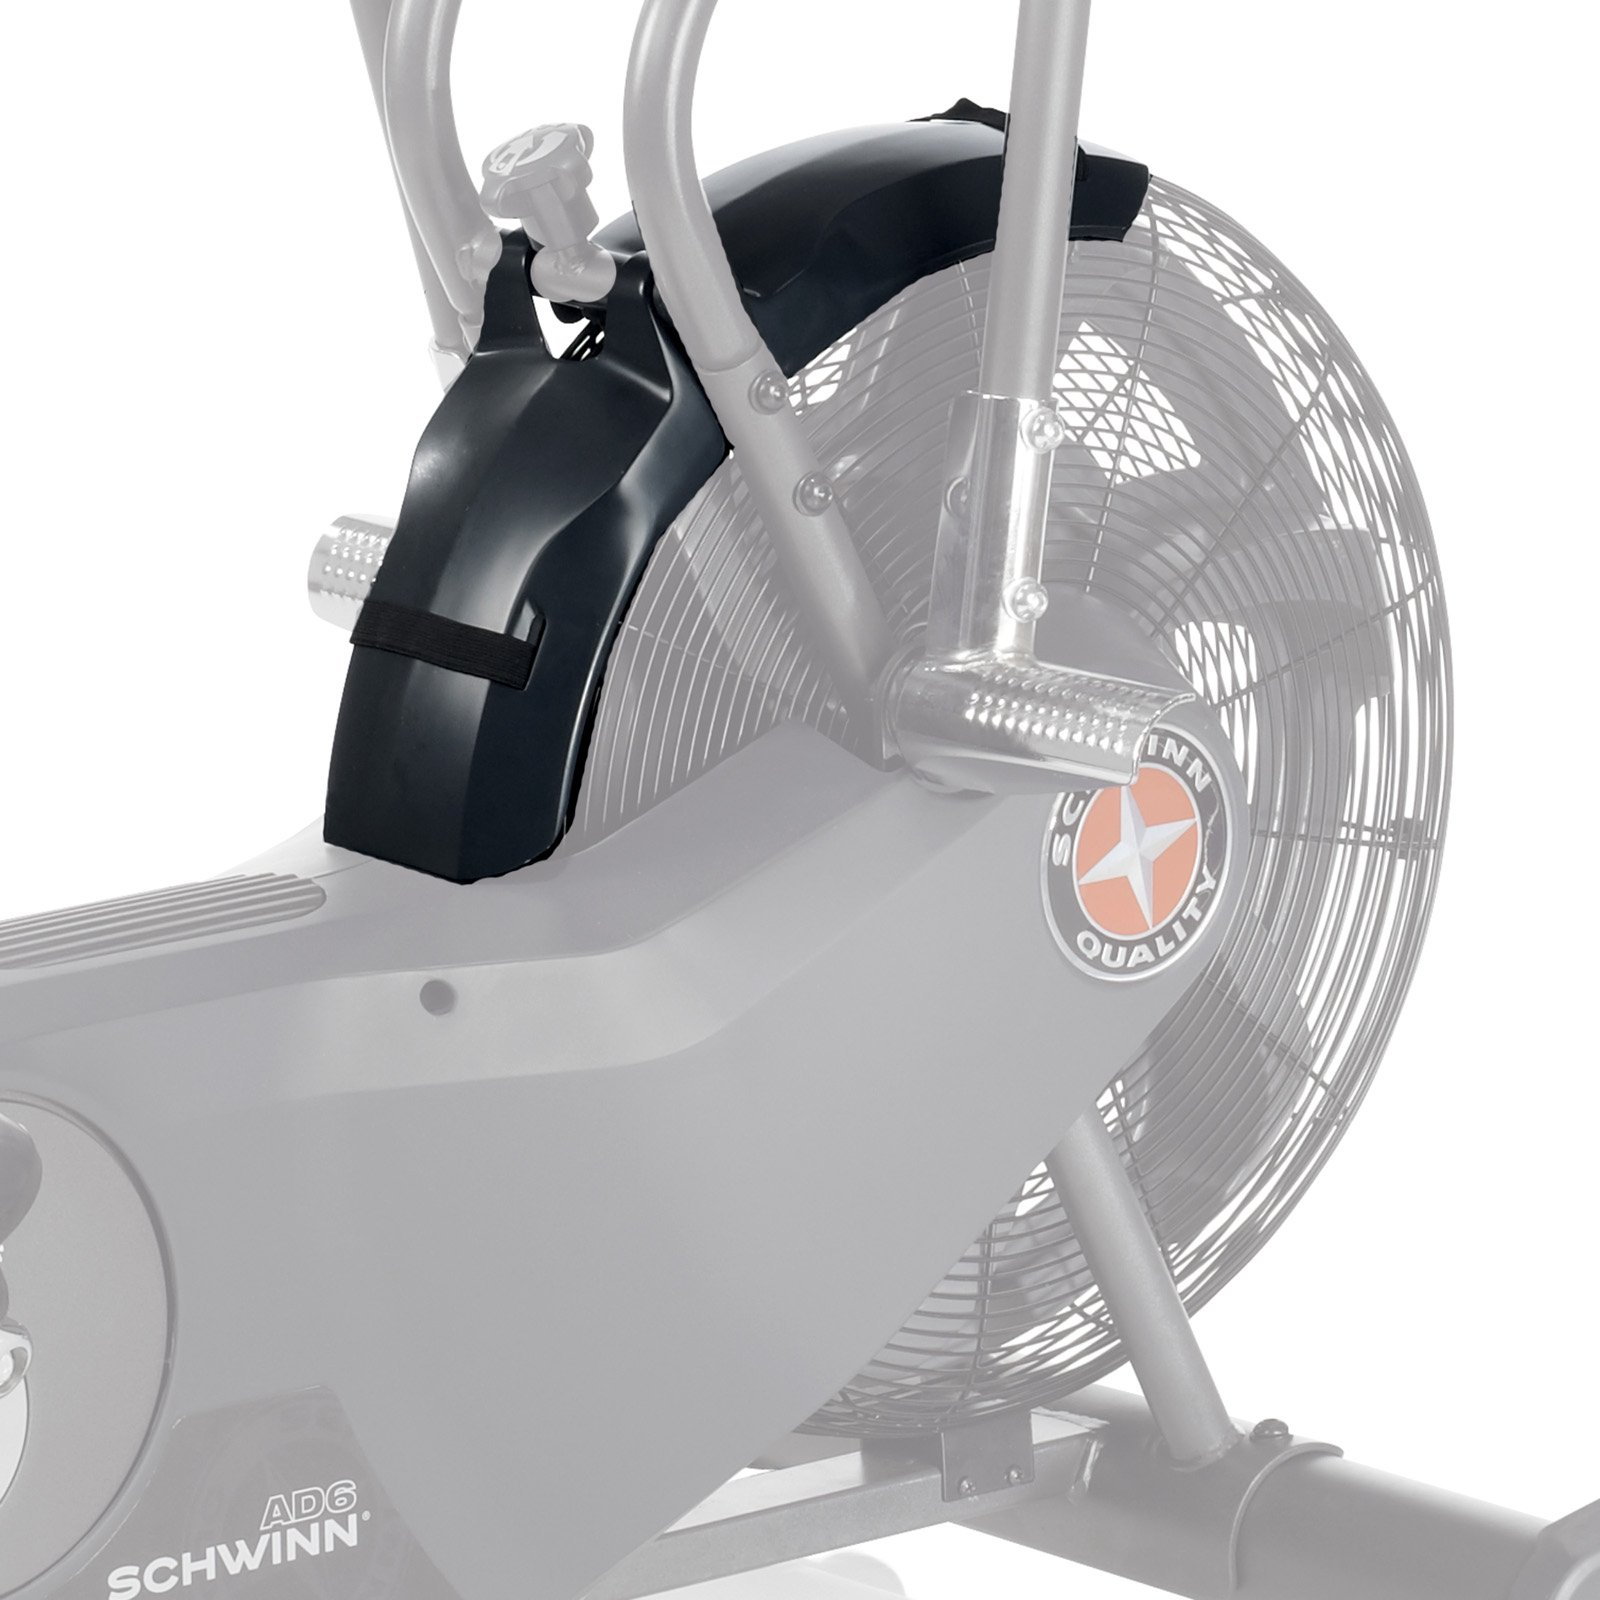 Schwinn Airdyne AD6 Exercise Bike Windscreen